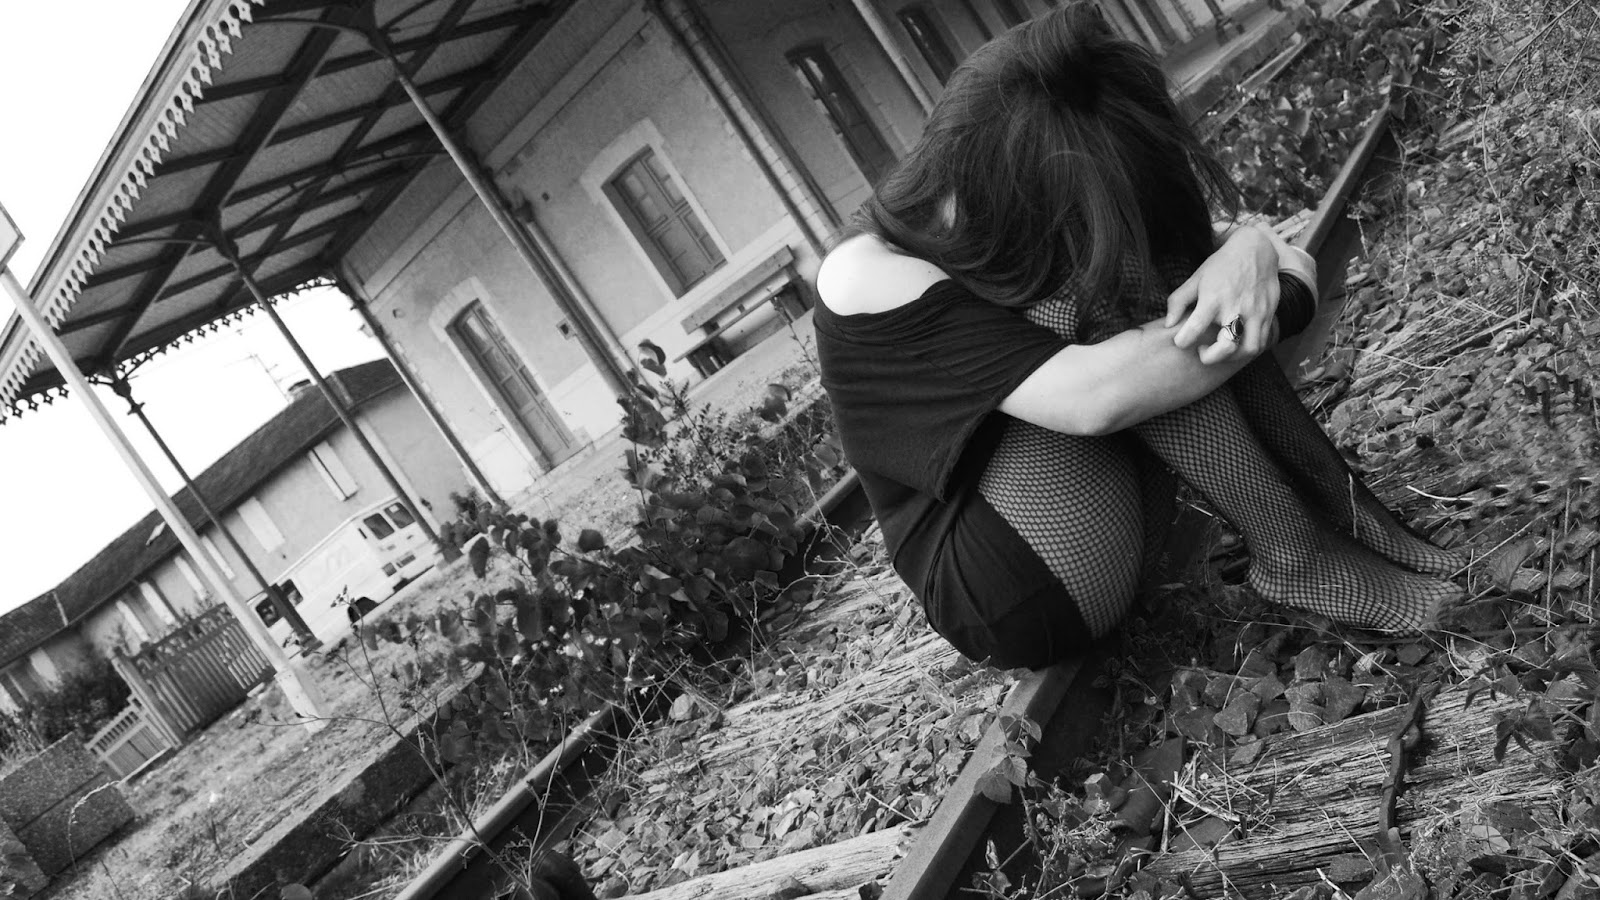 All Kinds Of Hd Wallpapers Sad Love Quotes Frienship Sad Girls Hd